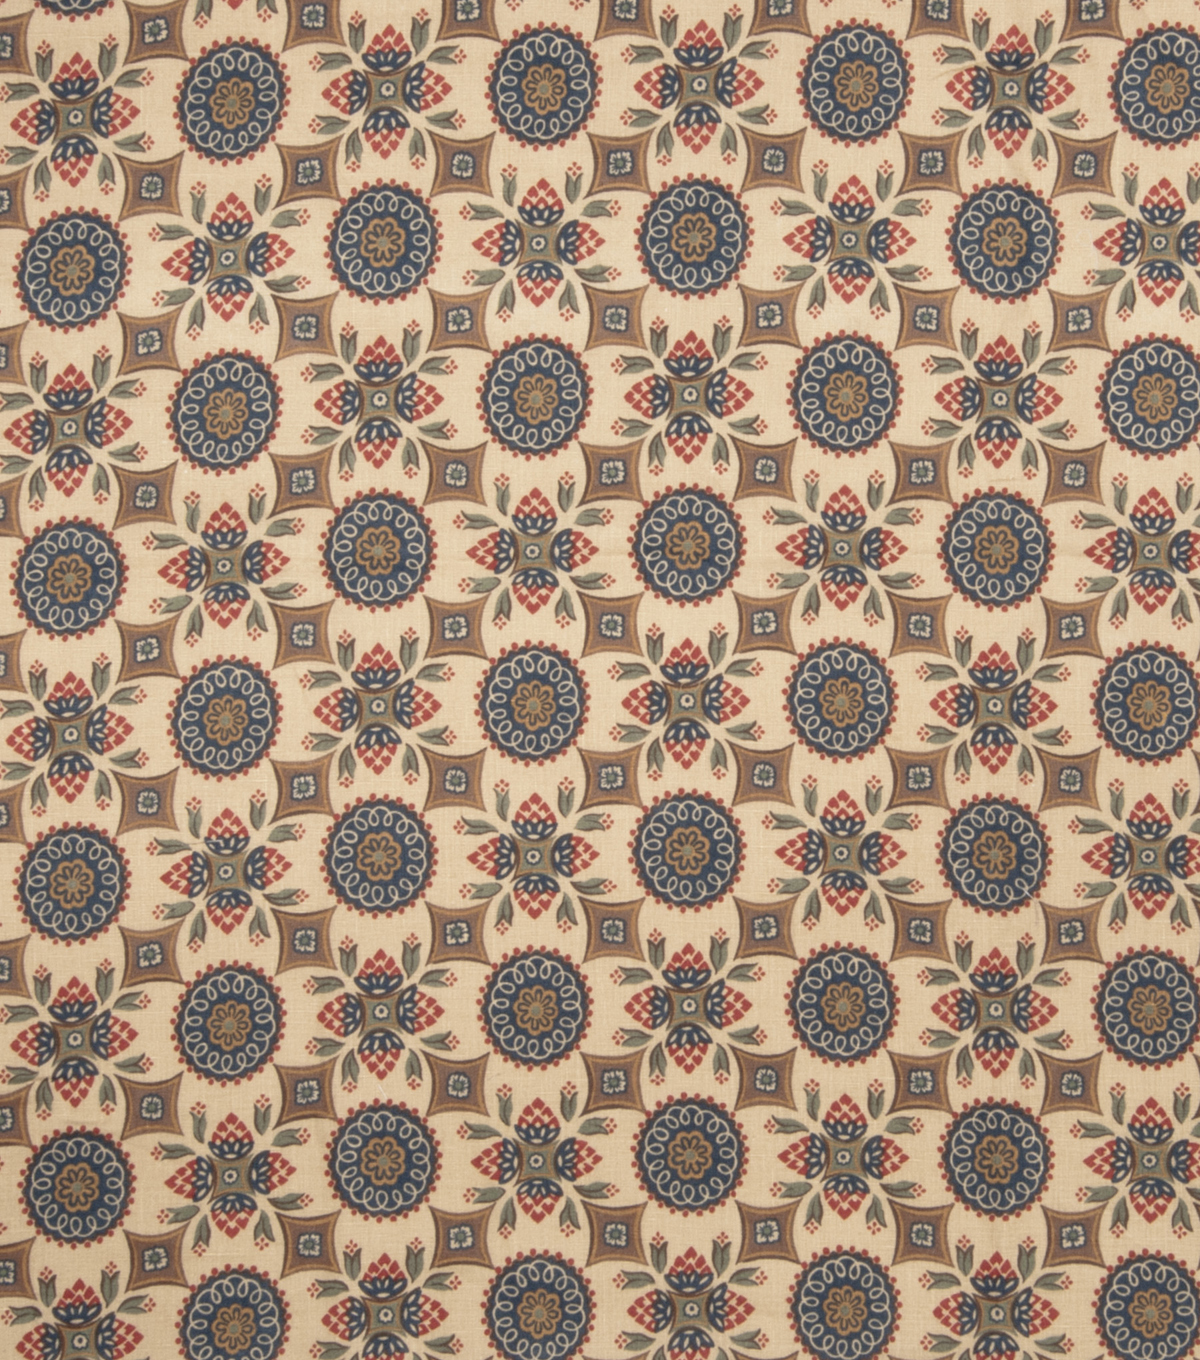 Home Decor 8\u0022x8\u0022 Fabric Swatch-Jaclyn Smith Imogene Heritage